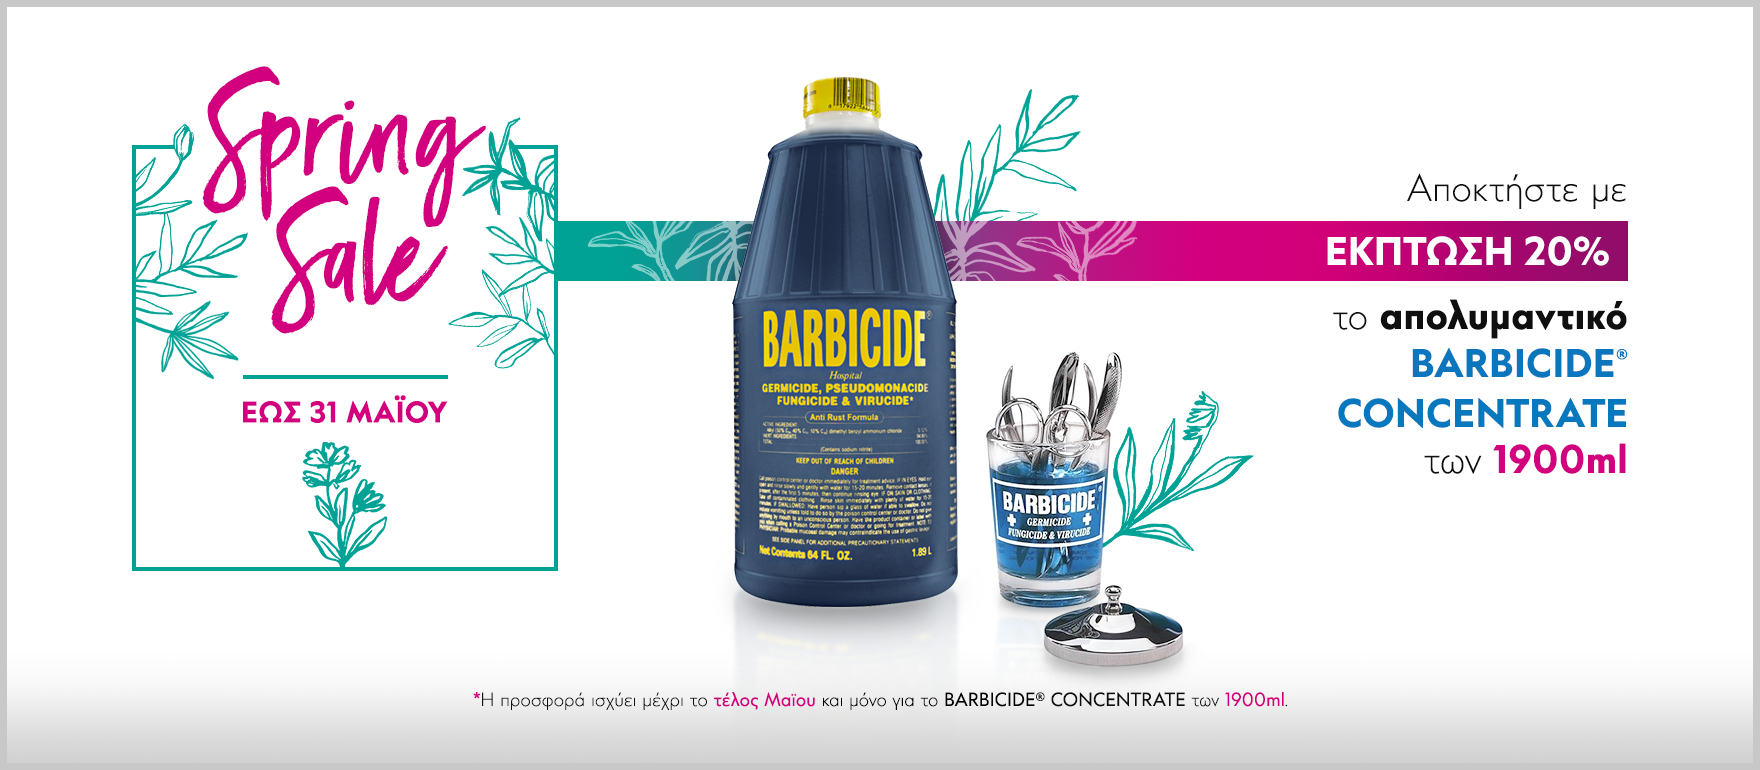 Spring Sale - Barbicide 1900ml 50% Off